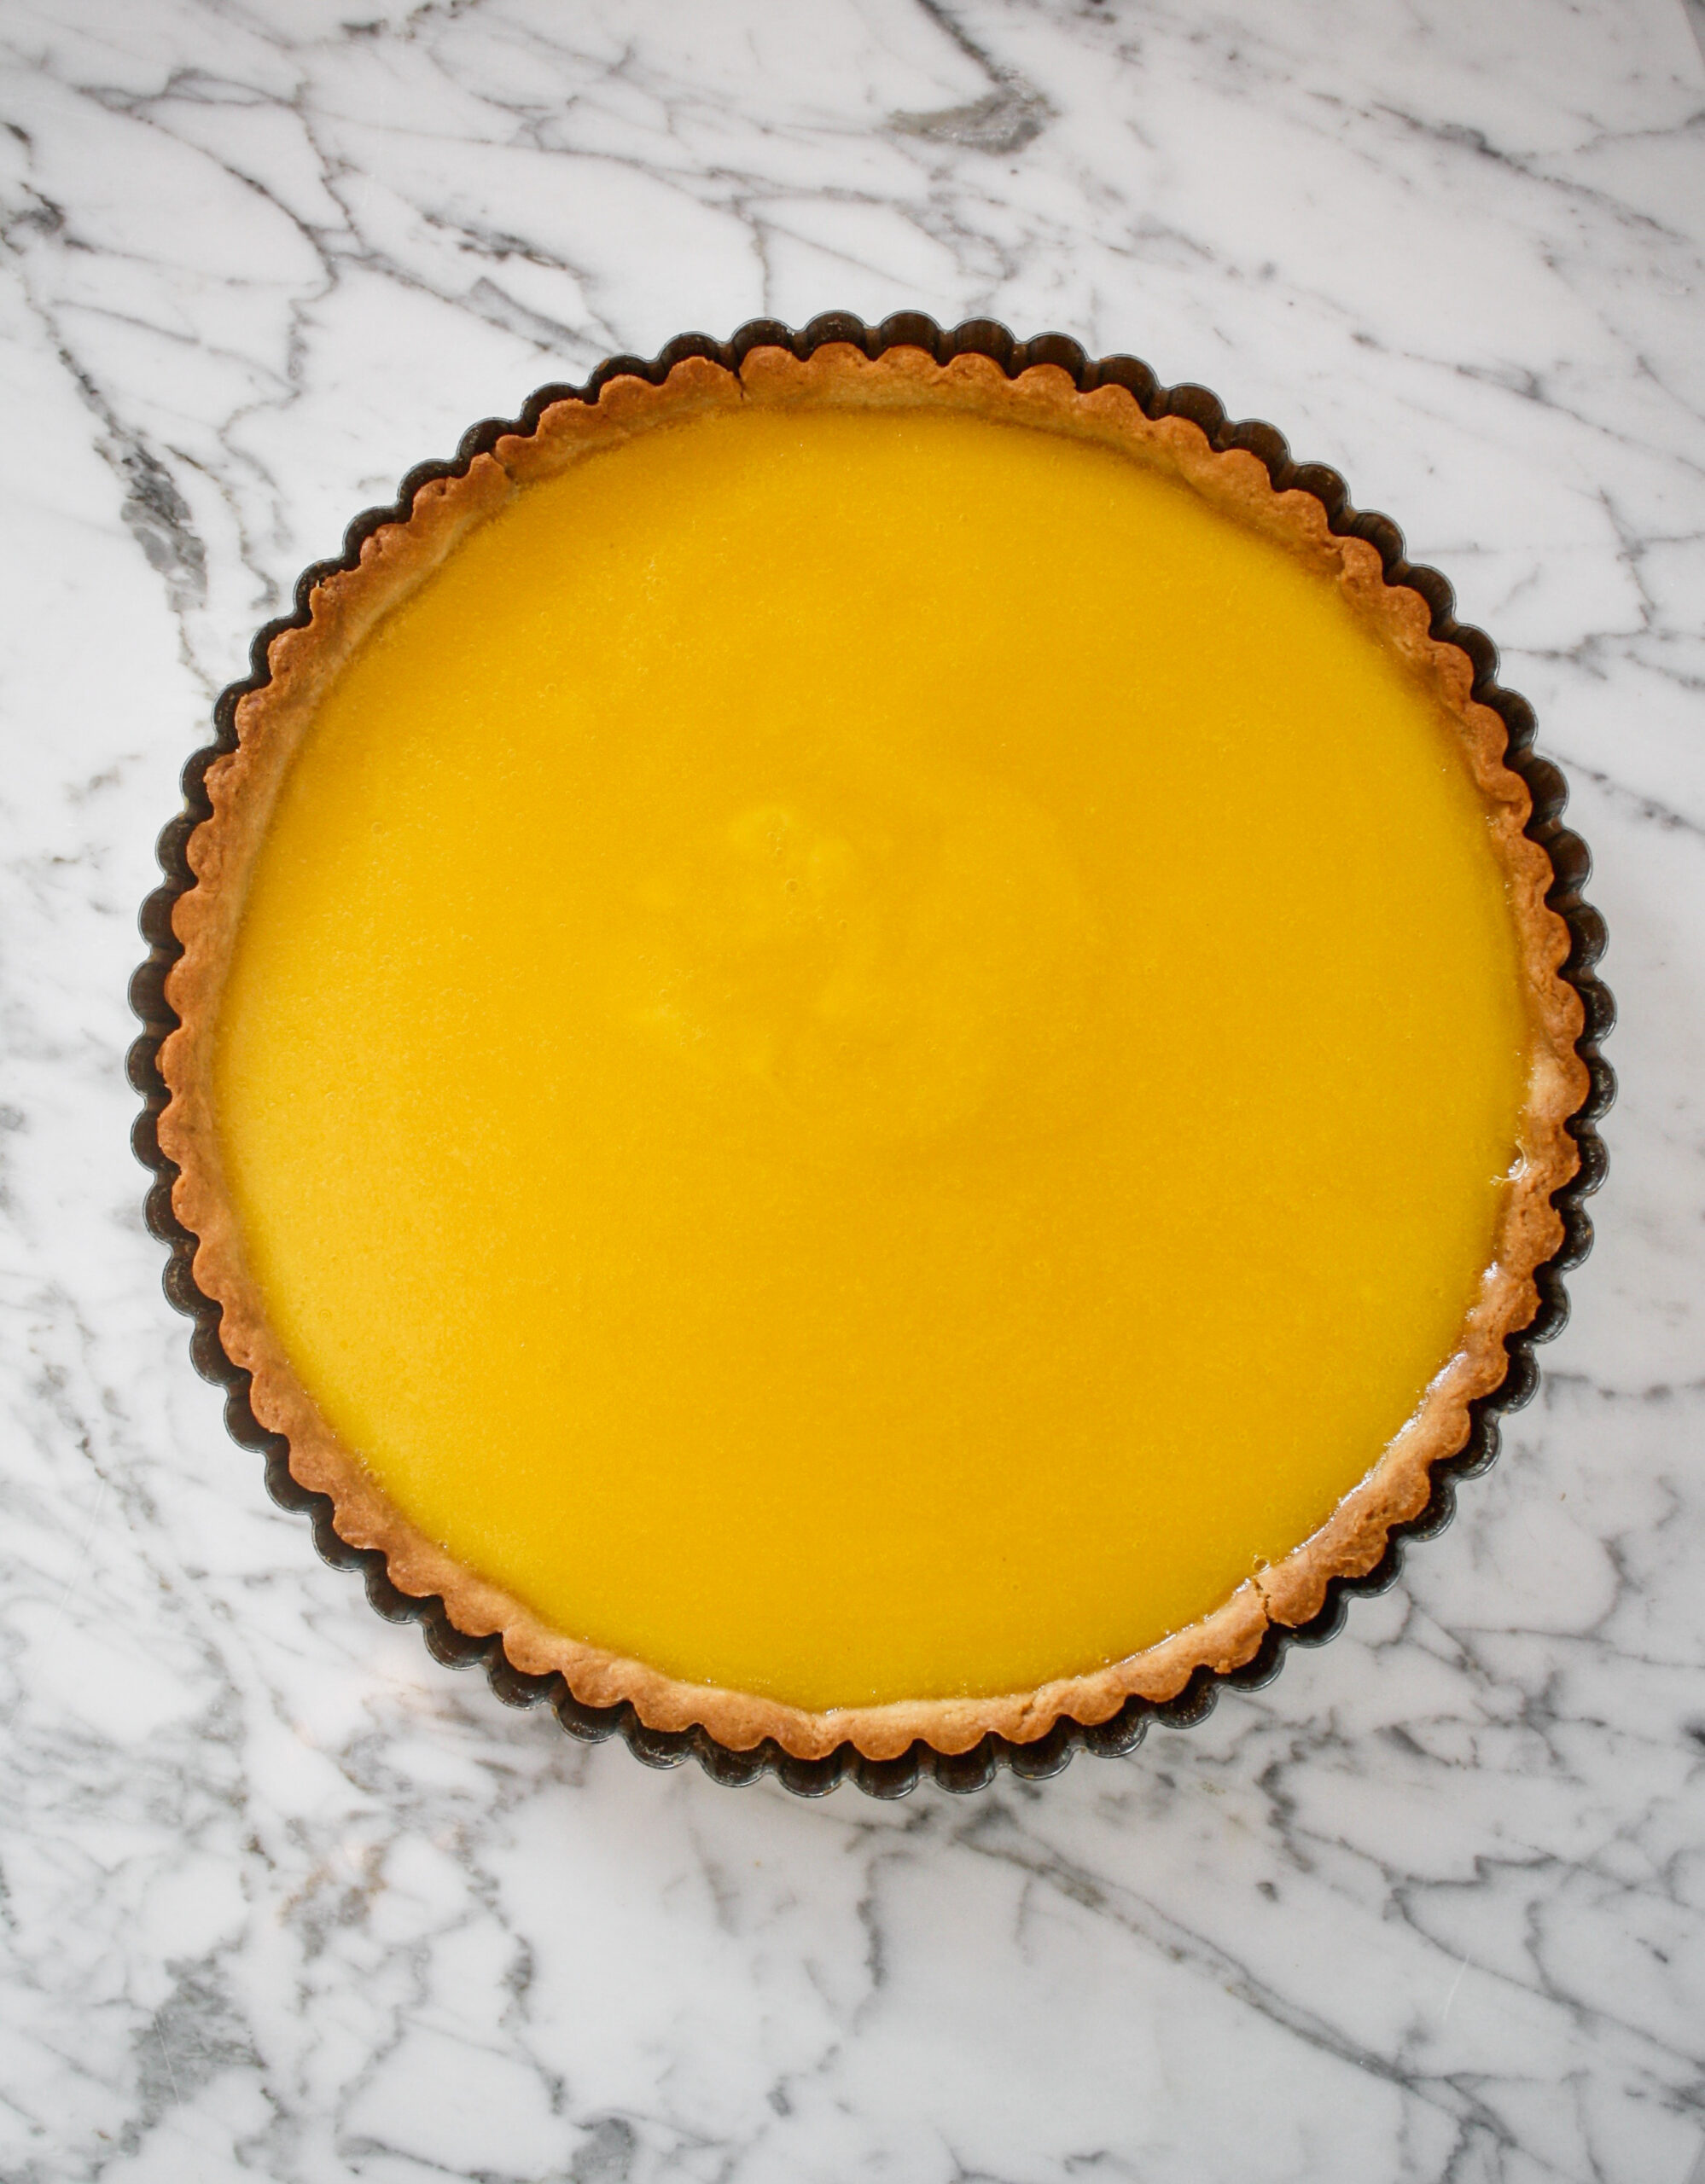 Tart pan lined with baked tart crust and filled with lemon curd set on top of a marble surface.